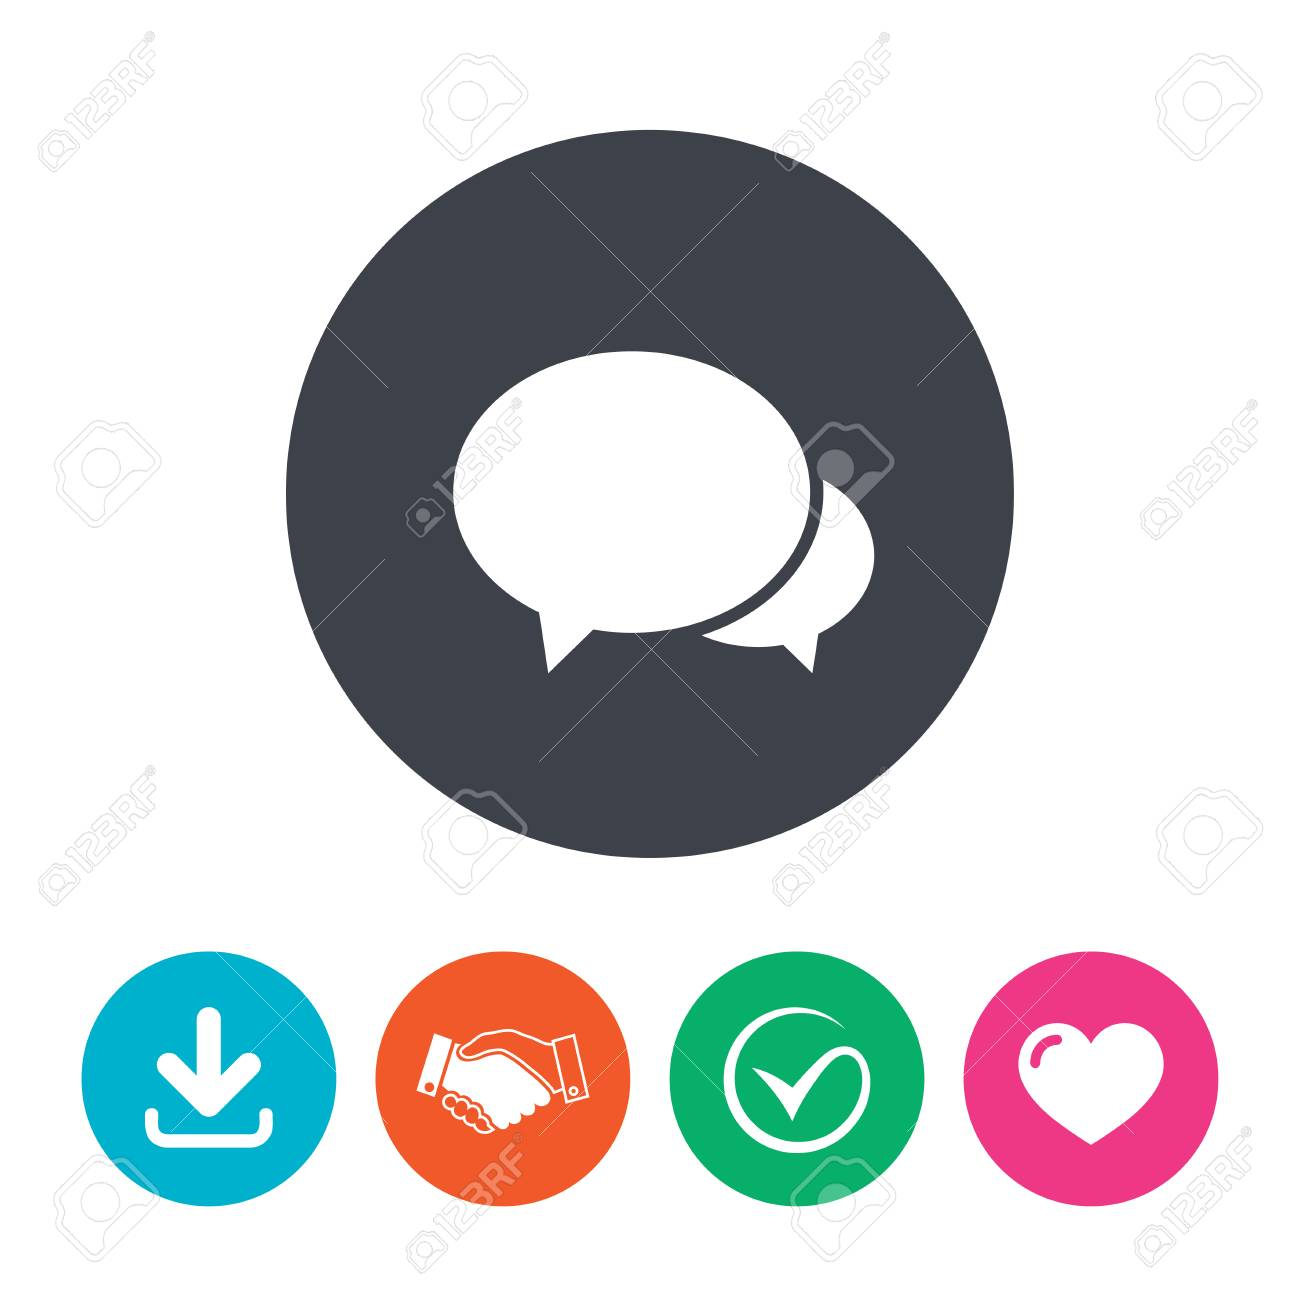 Free communication icon png 345597   download communication icon.